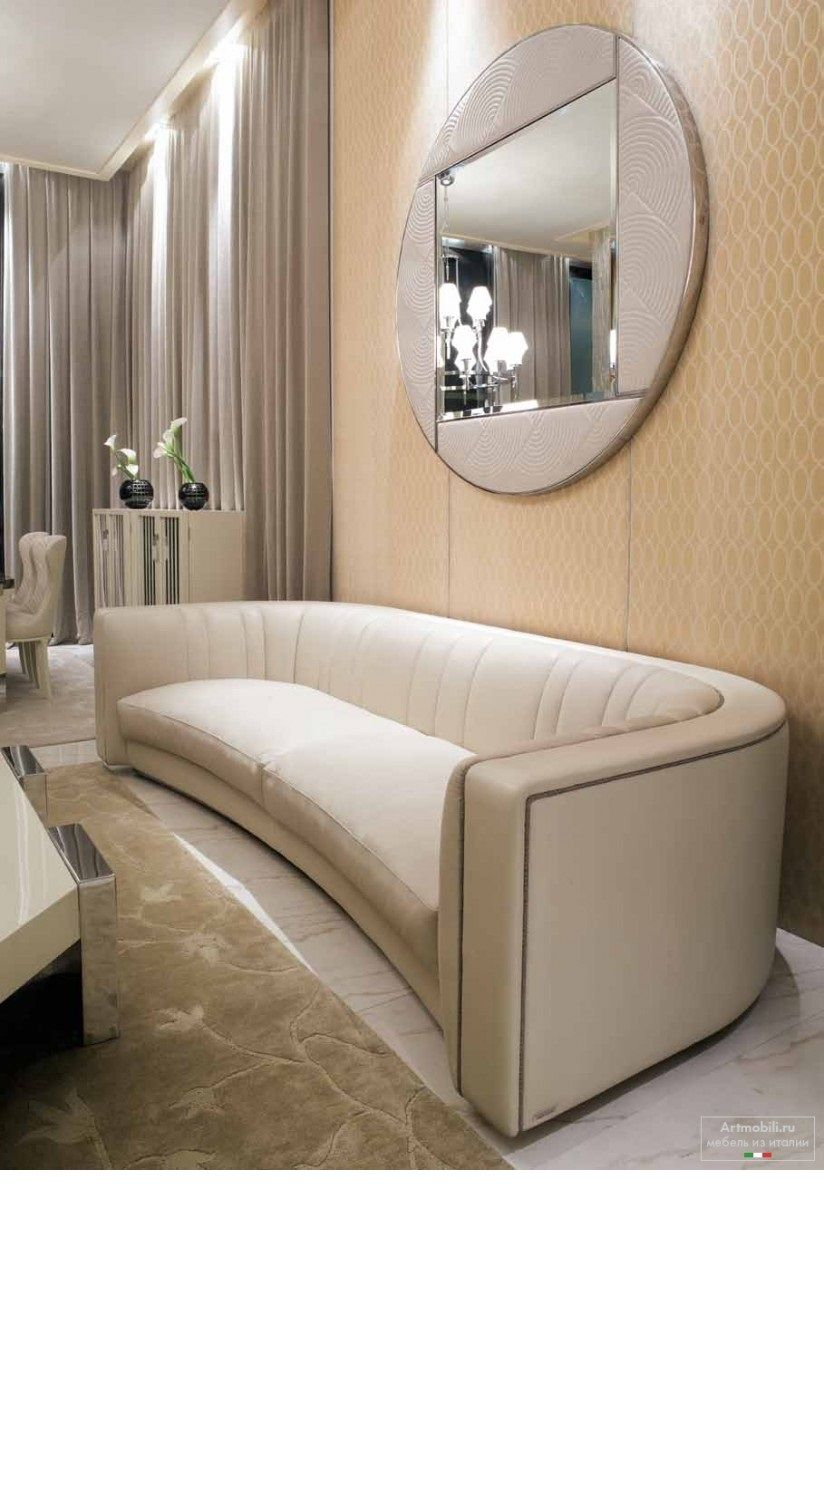 custom made living room furniture small ideas with plants luxury designer by